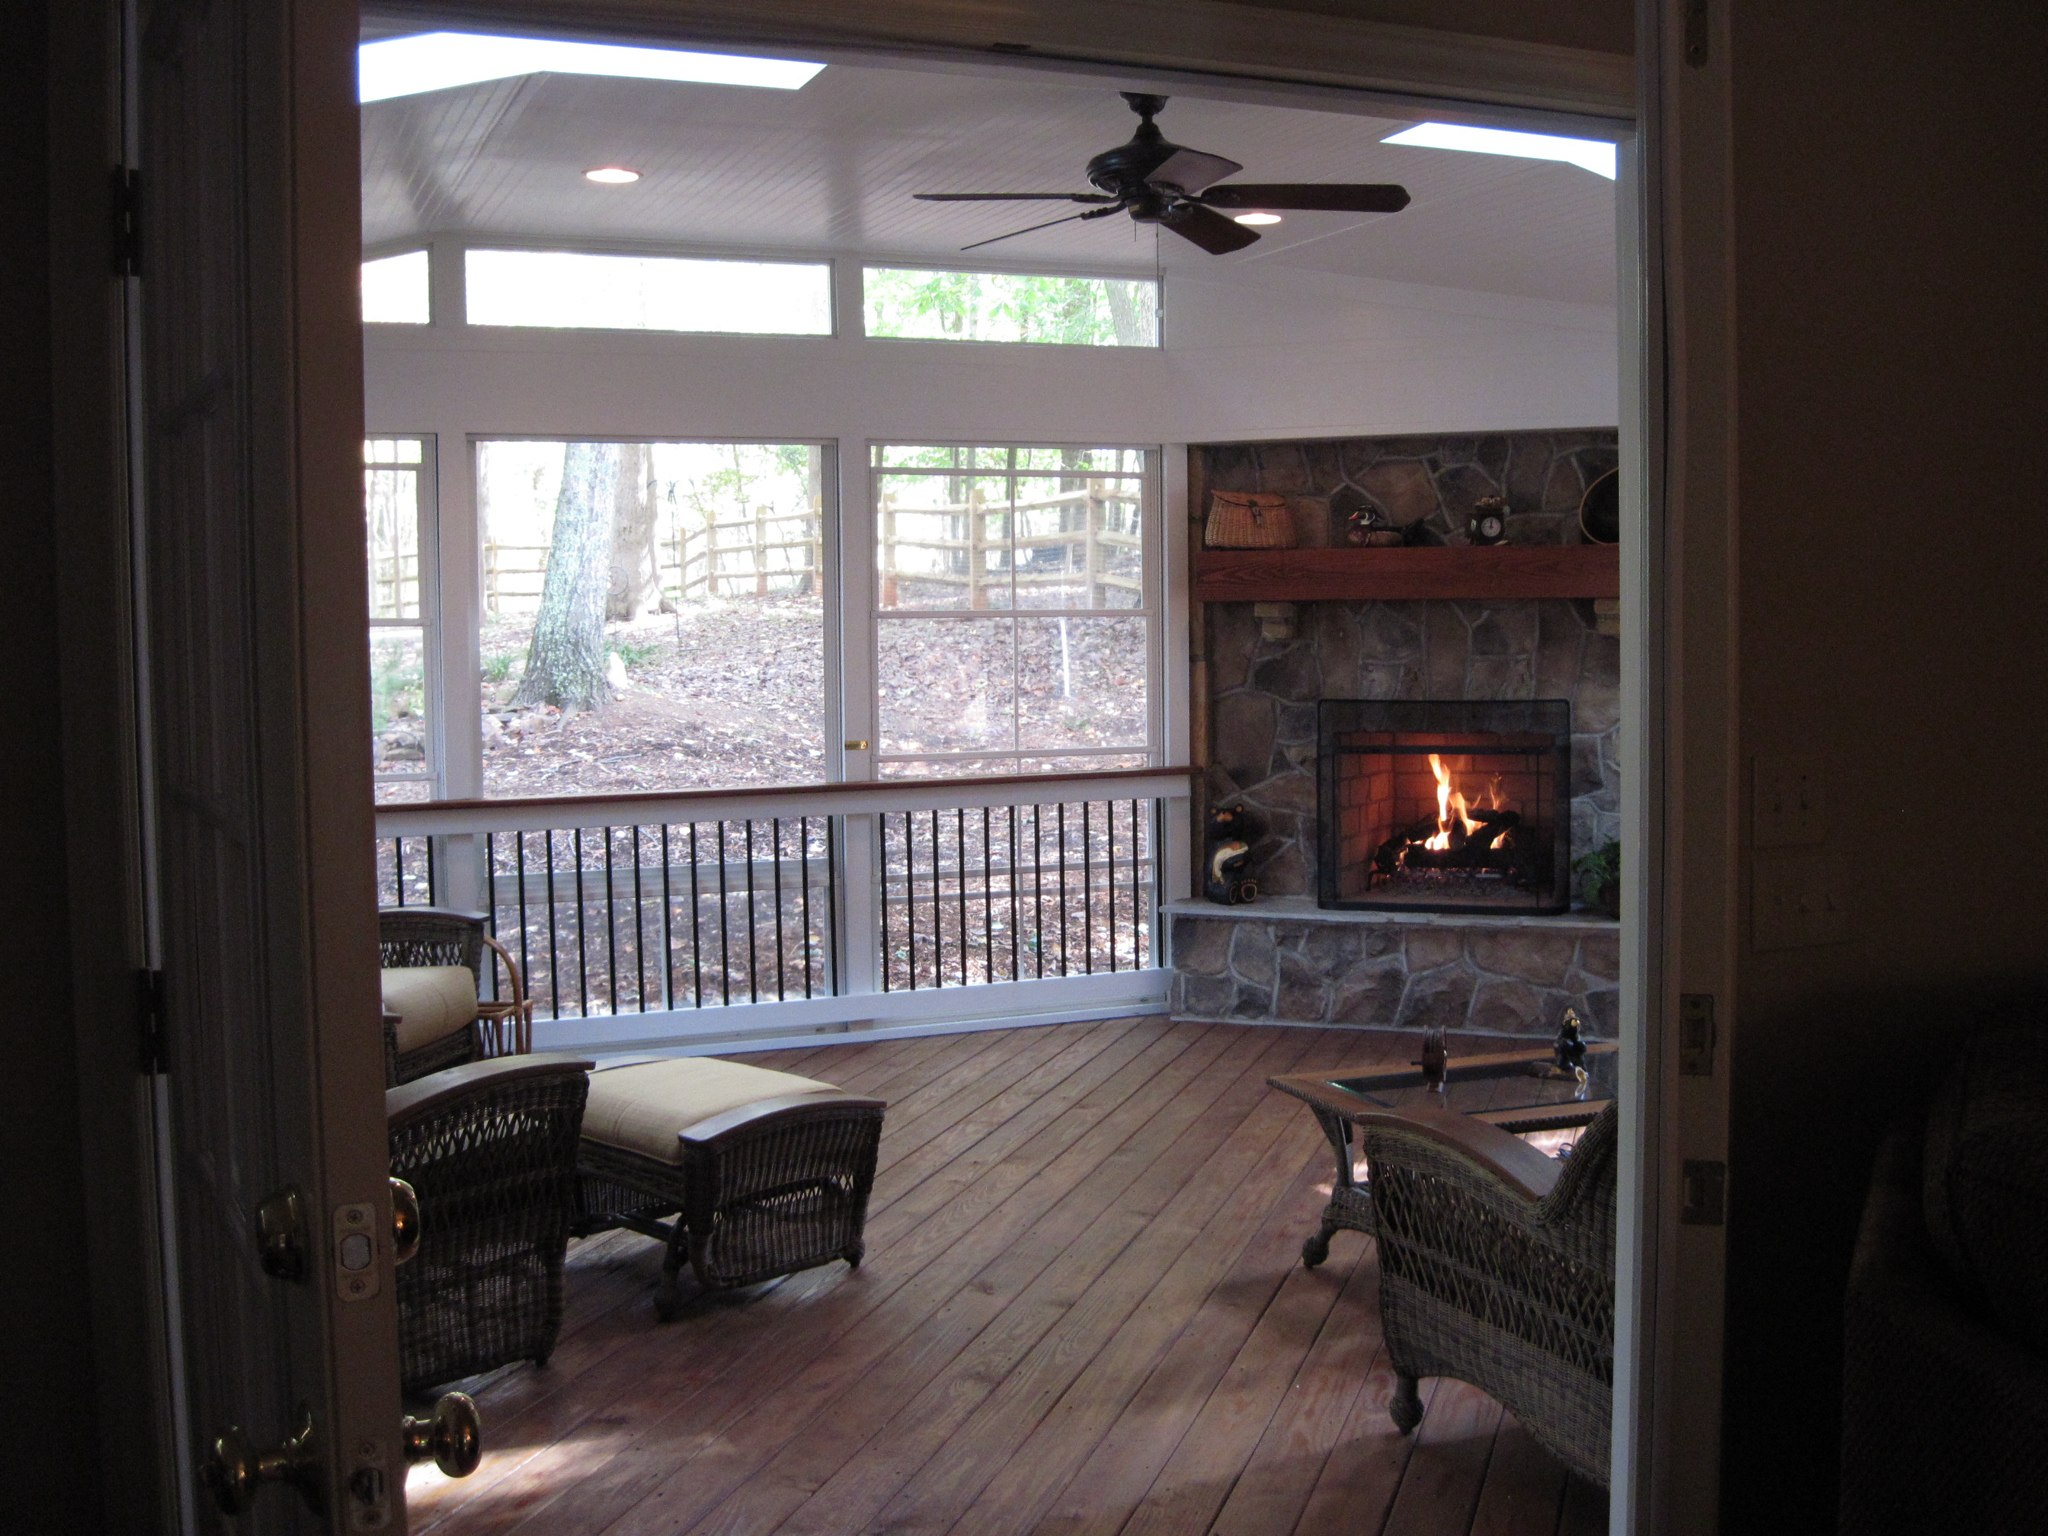 New Code For North Carolina For Outdoor Fireplaces